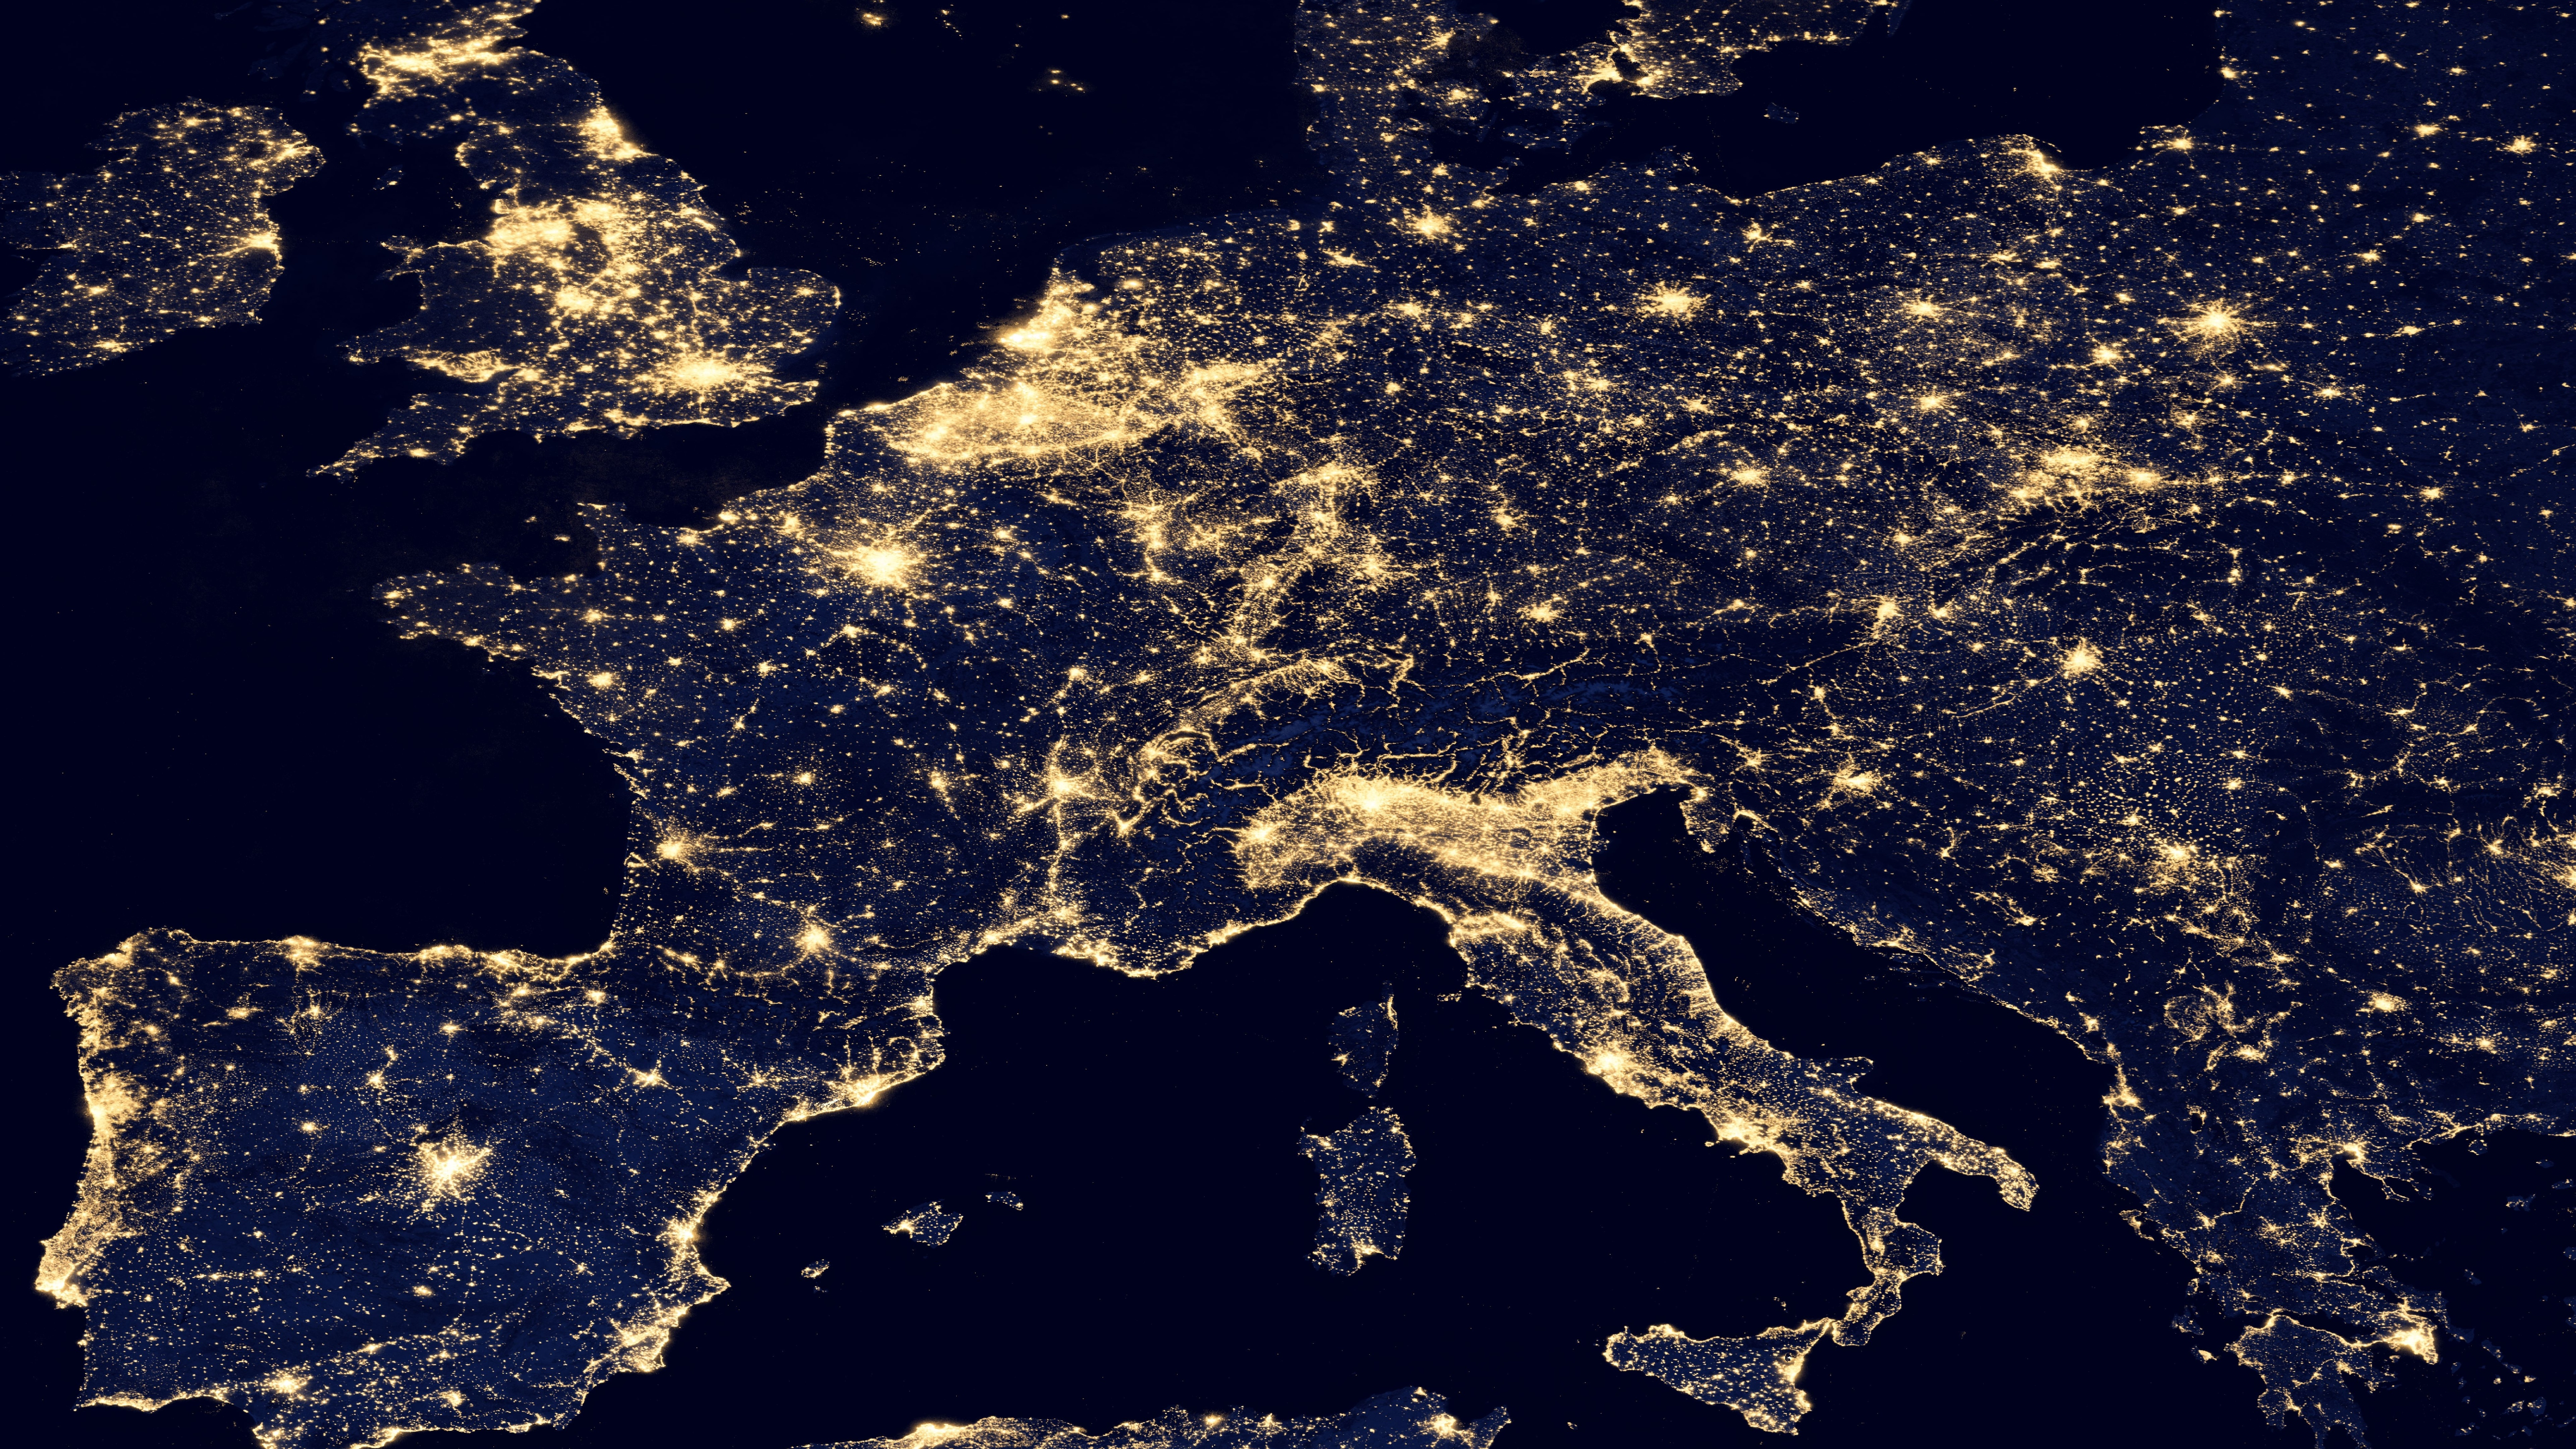 Night Lights of Central, Southern & Western Europe v2012 wallpaper